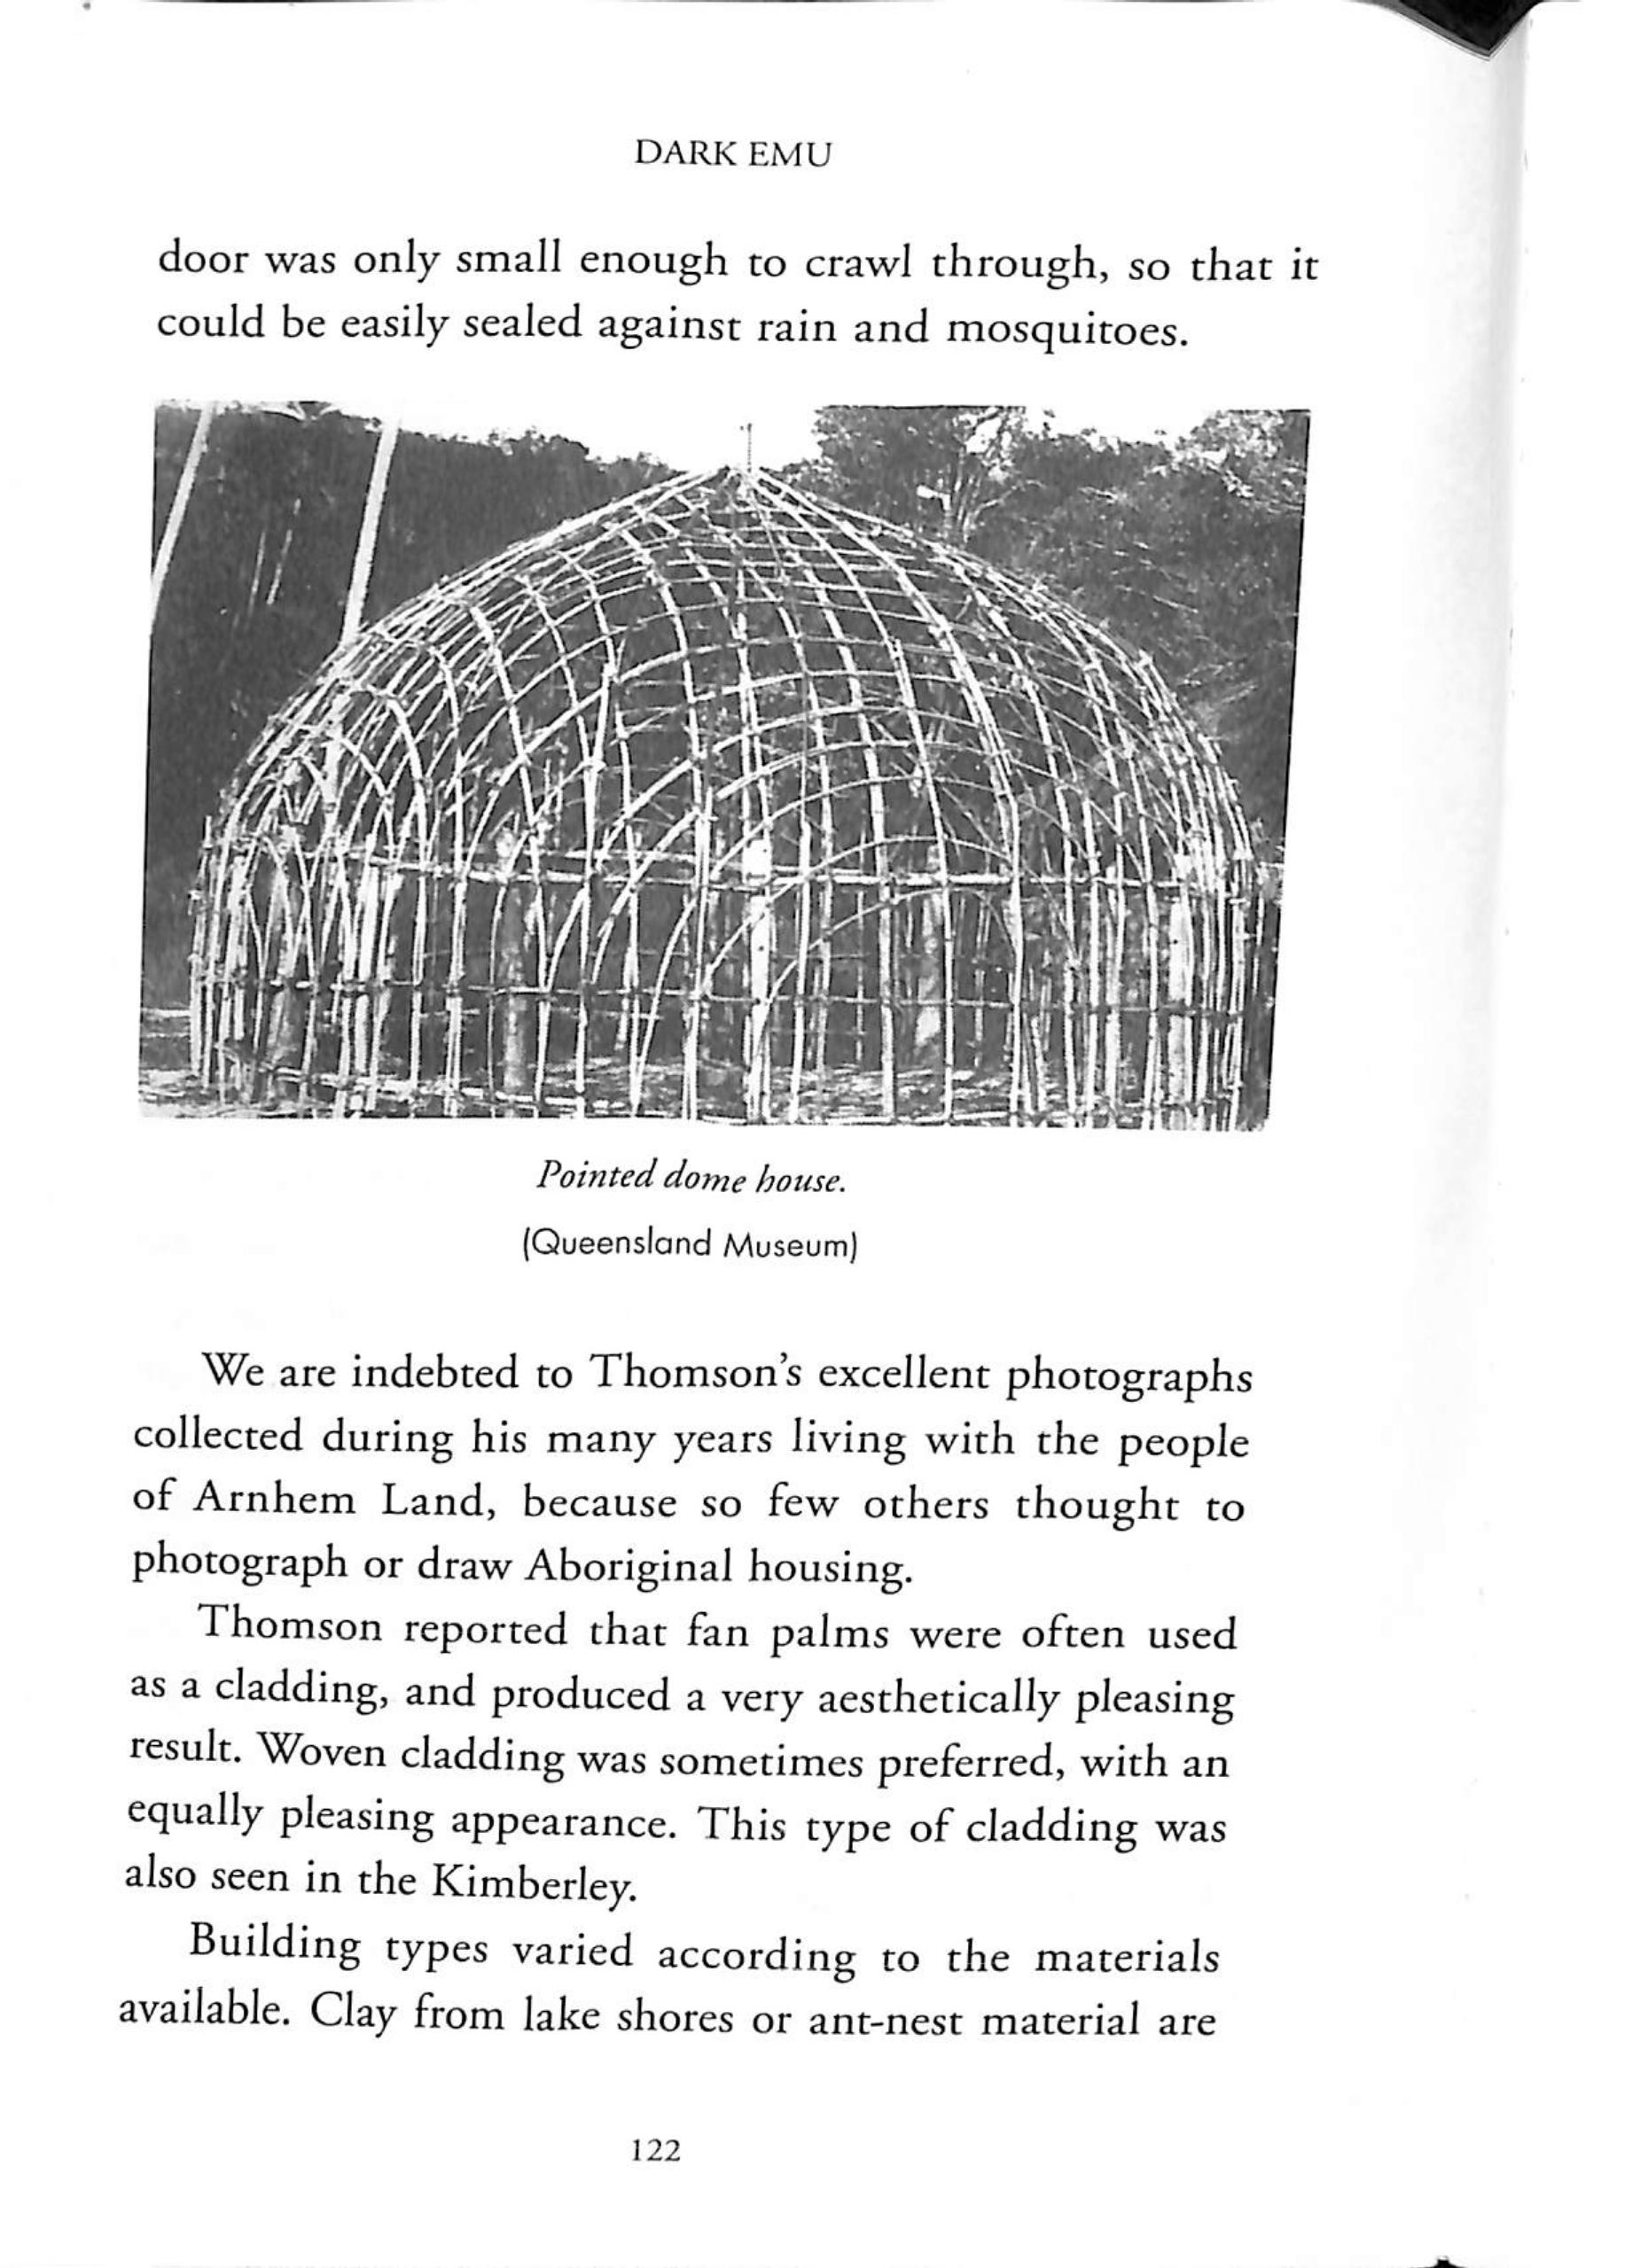 """Figure 1 : Supposedly an example of an """"Australian Aboriginal Pointed Dome House"""" in  Dark Emu"""